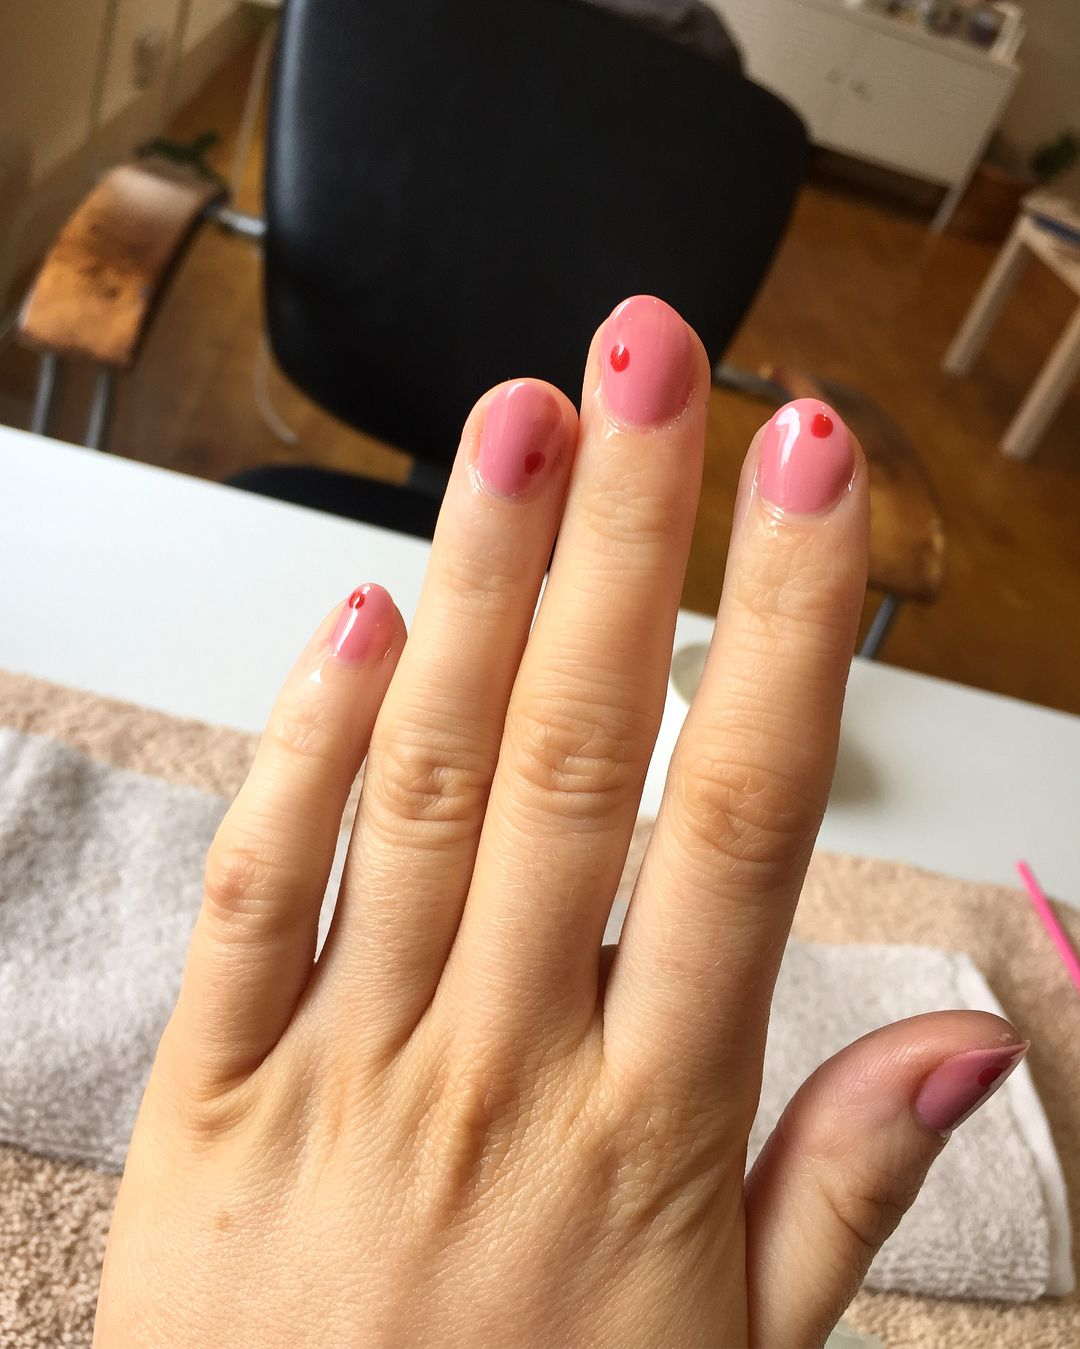 I Cannot Get Enough Of This Pink Gel Its So Delicious Omg Nails